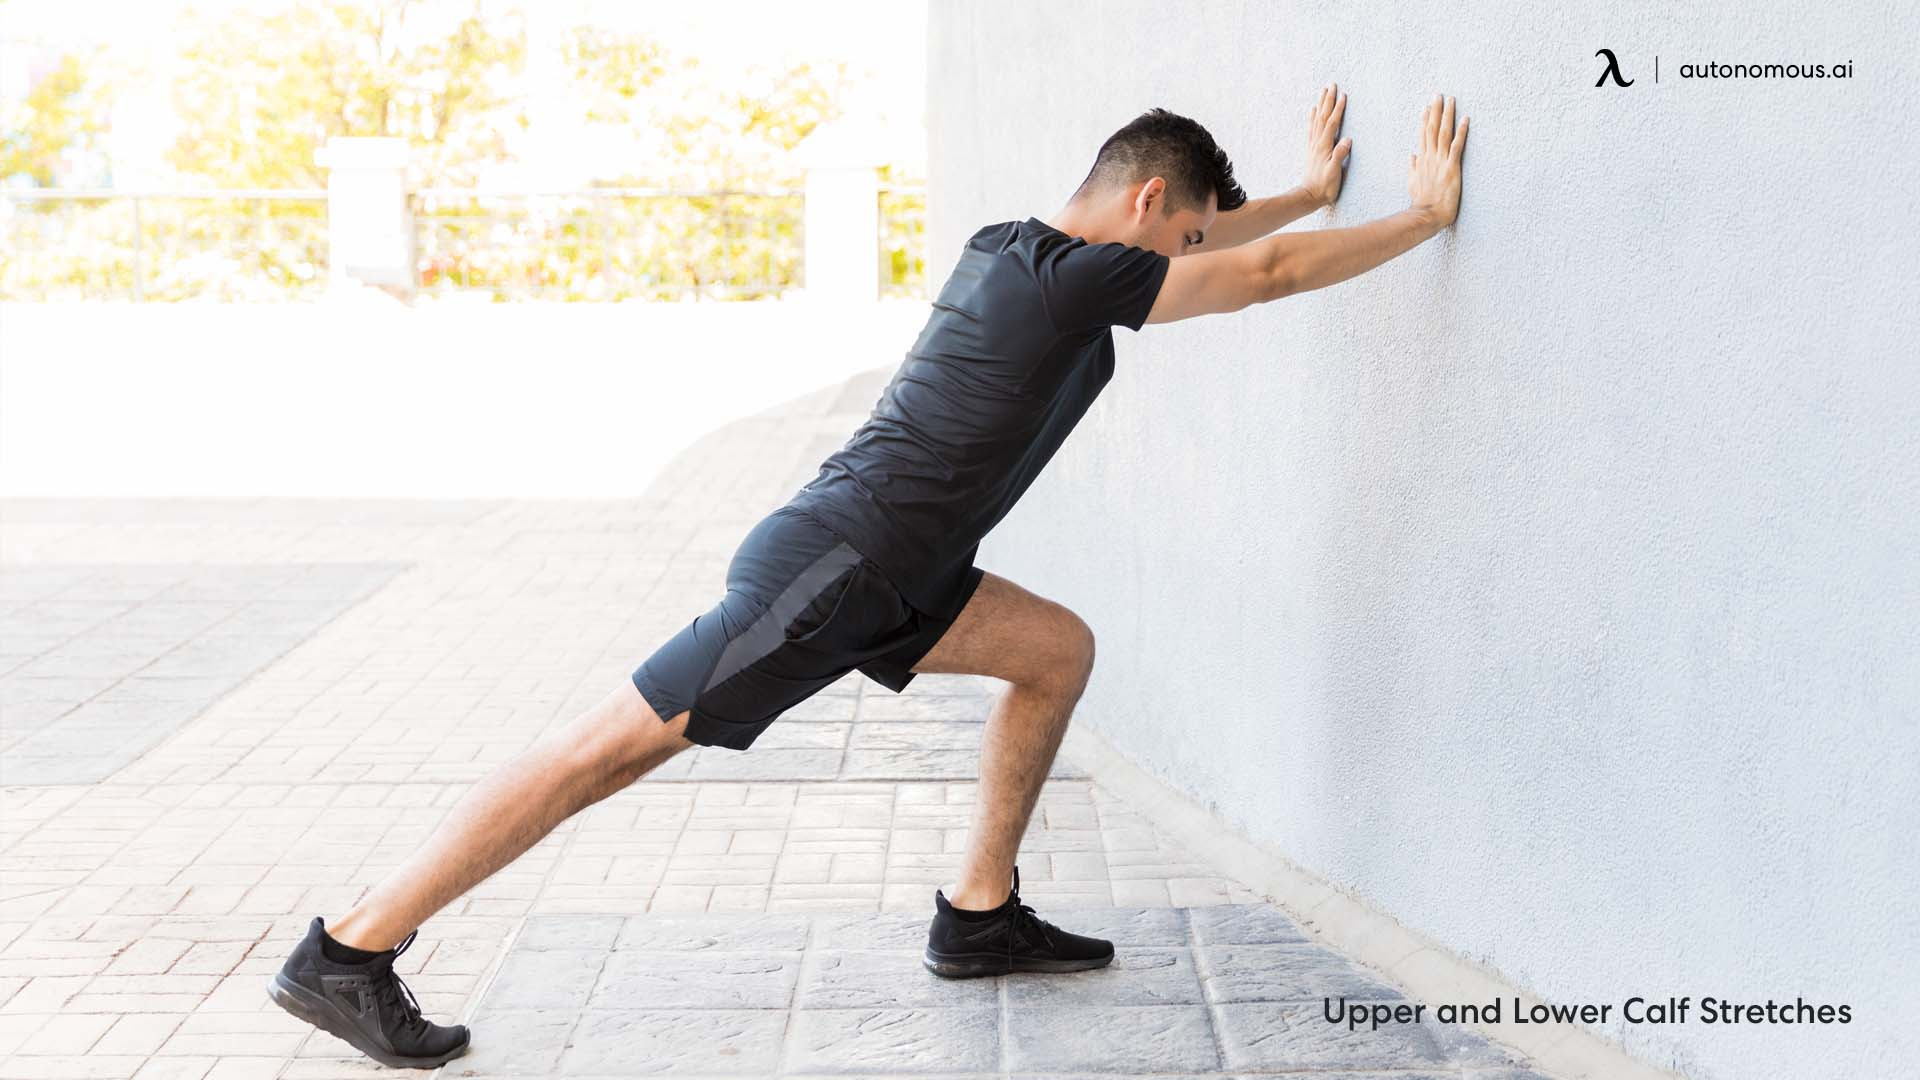 Upper and Lower Calf Stretches